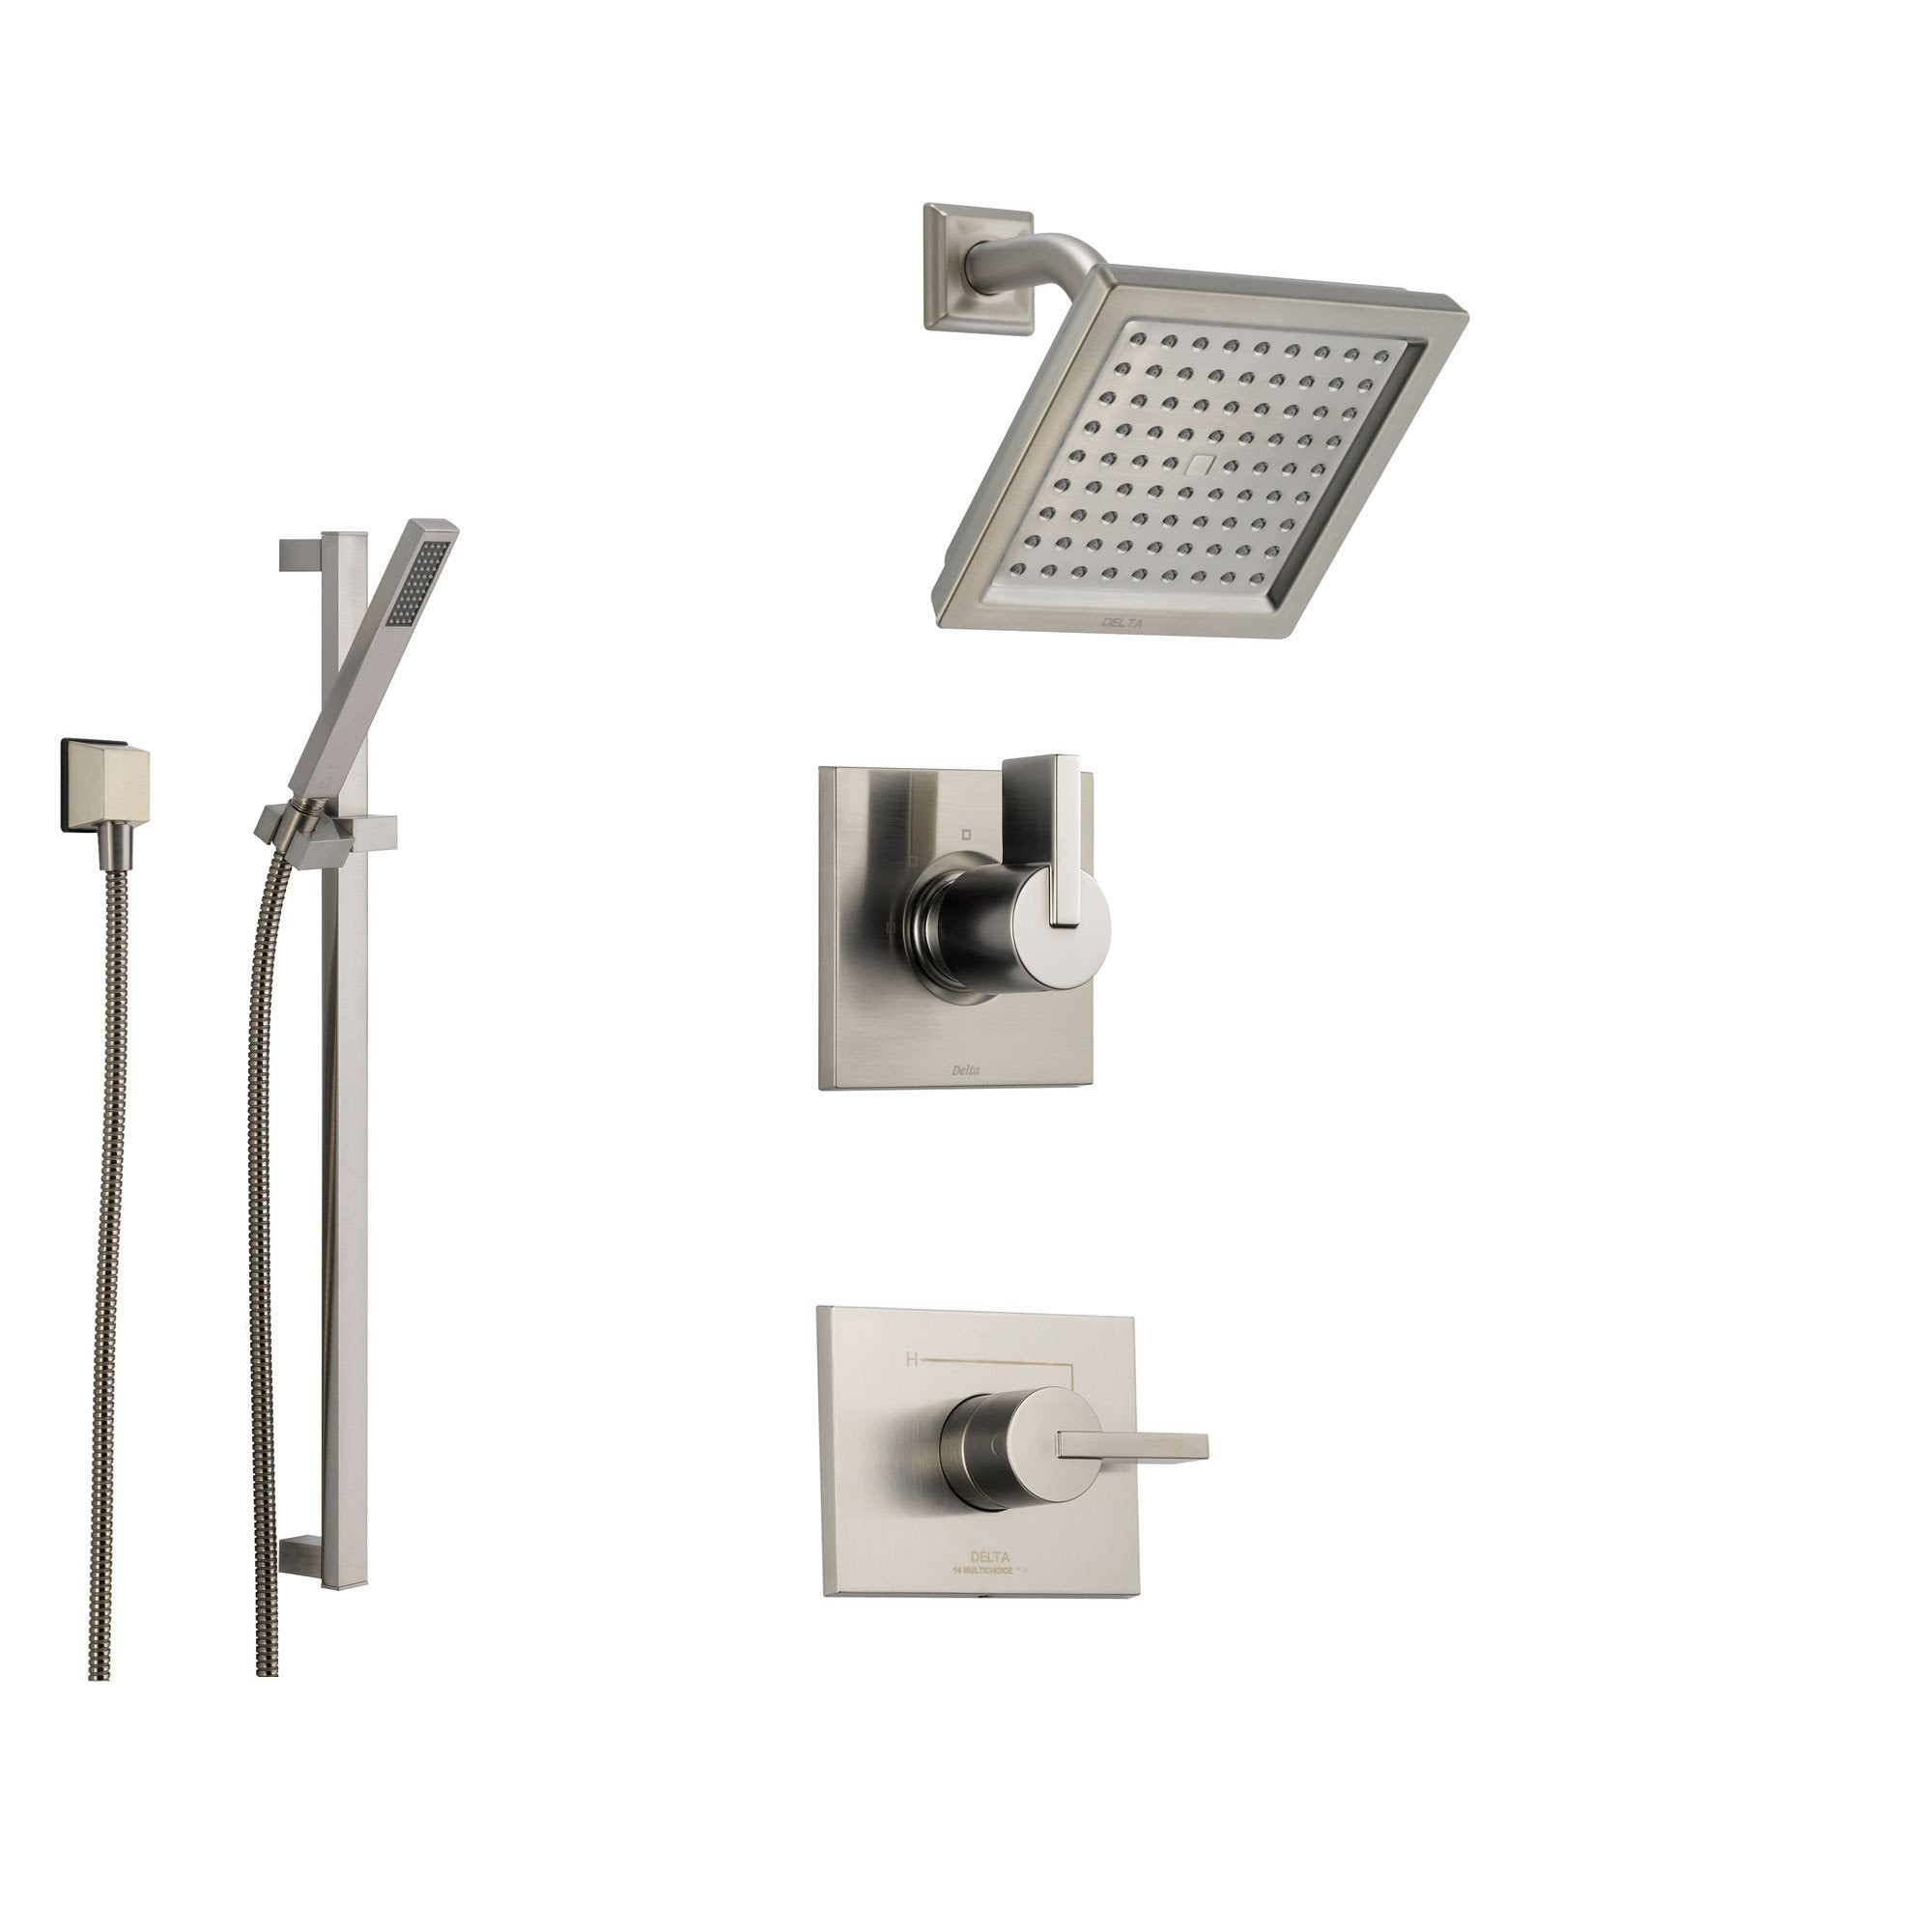 Delta Vero Stainless Steel Shower System with Normal Shower Handle, 3-setting Diverter, Square Showerhead, and Modern Handheld Shower SS145385SS